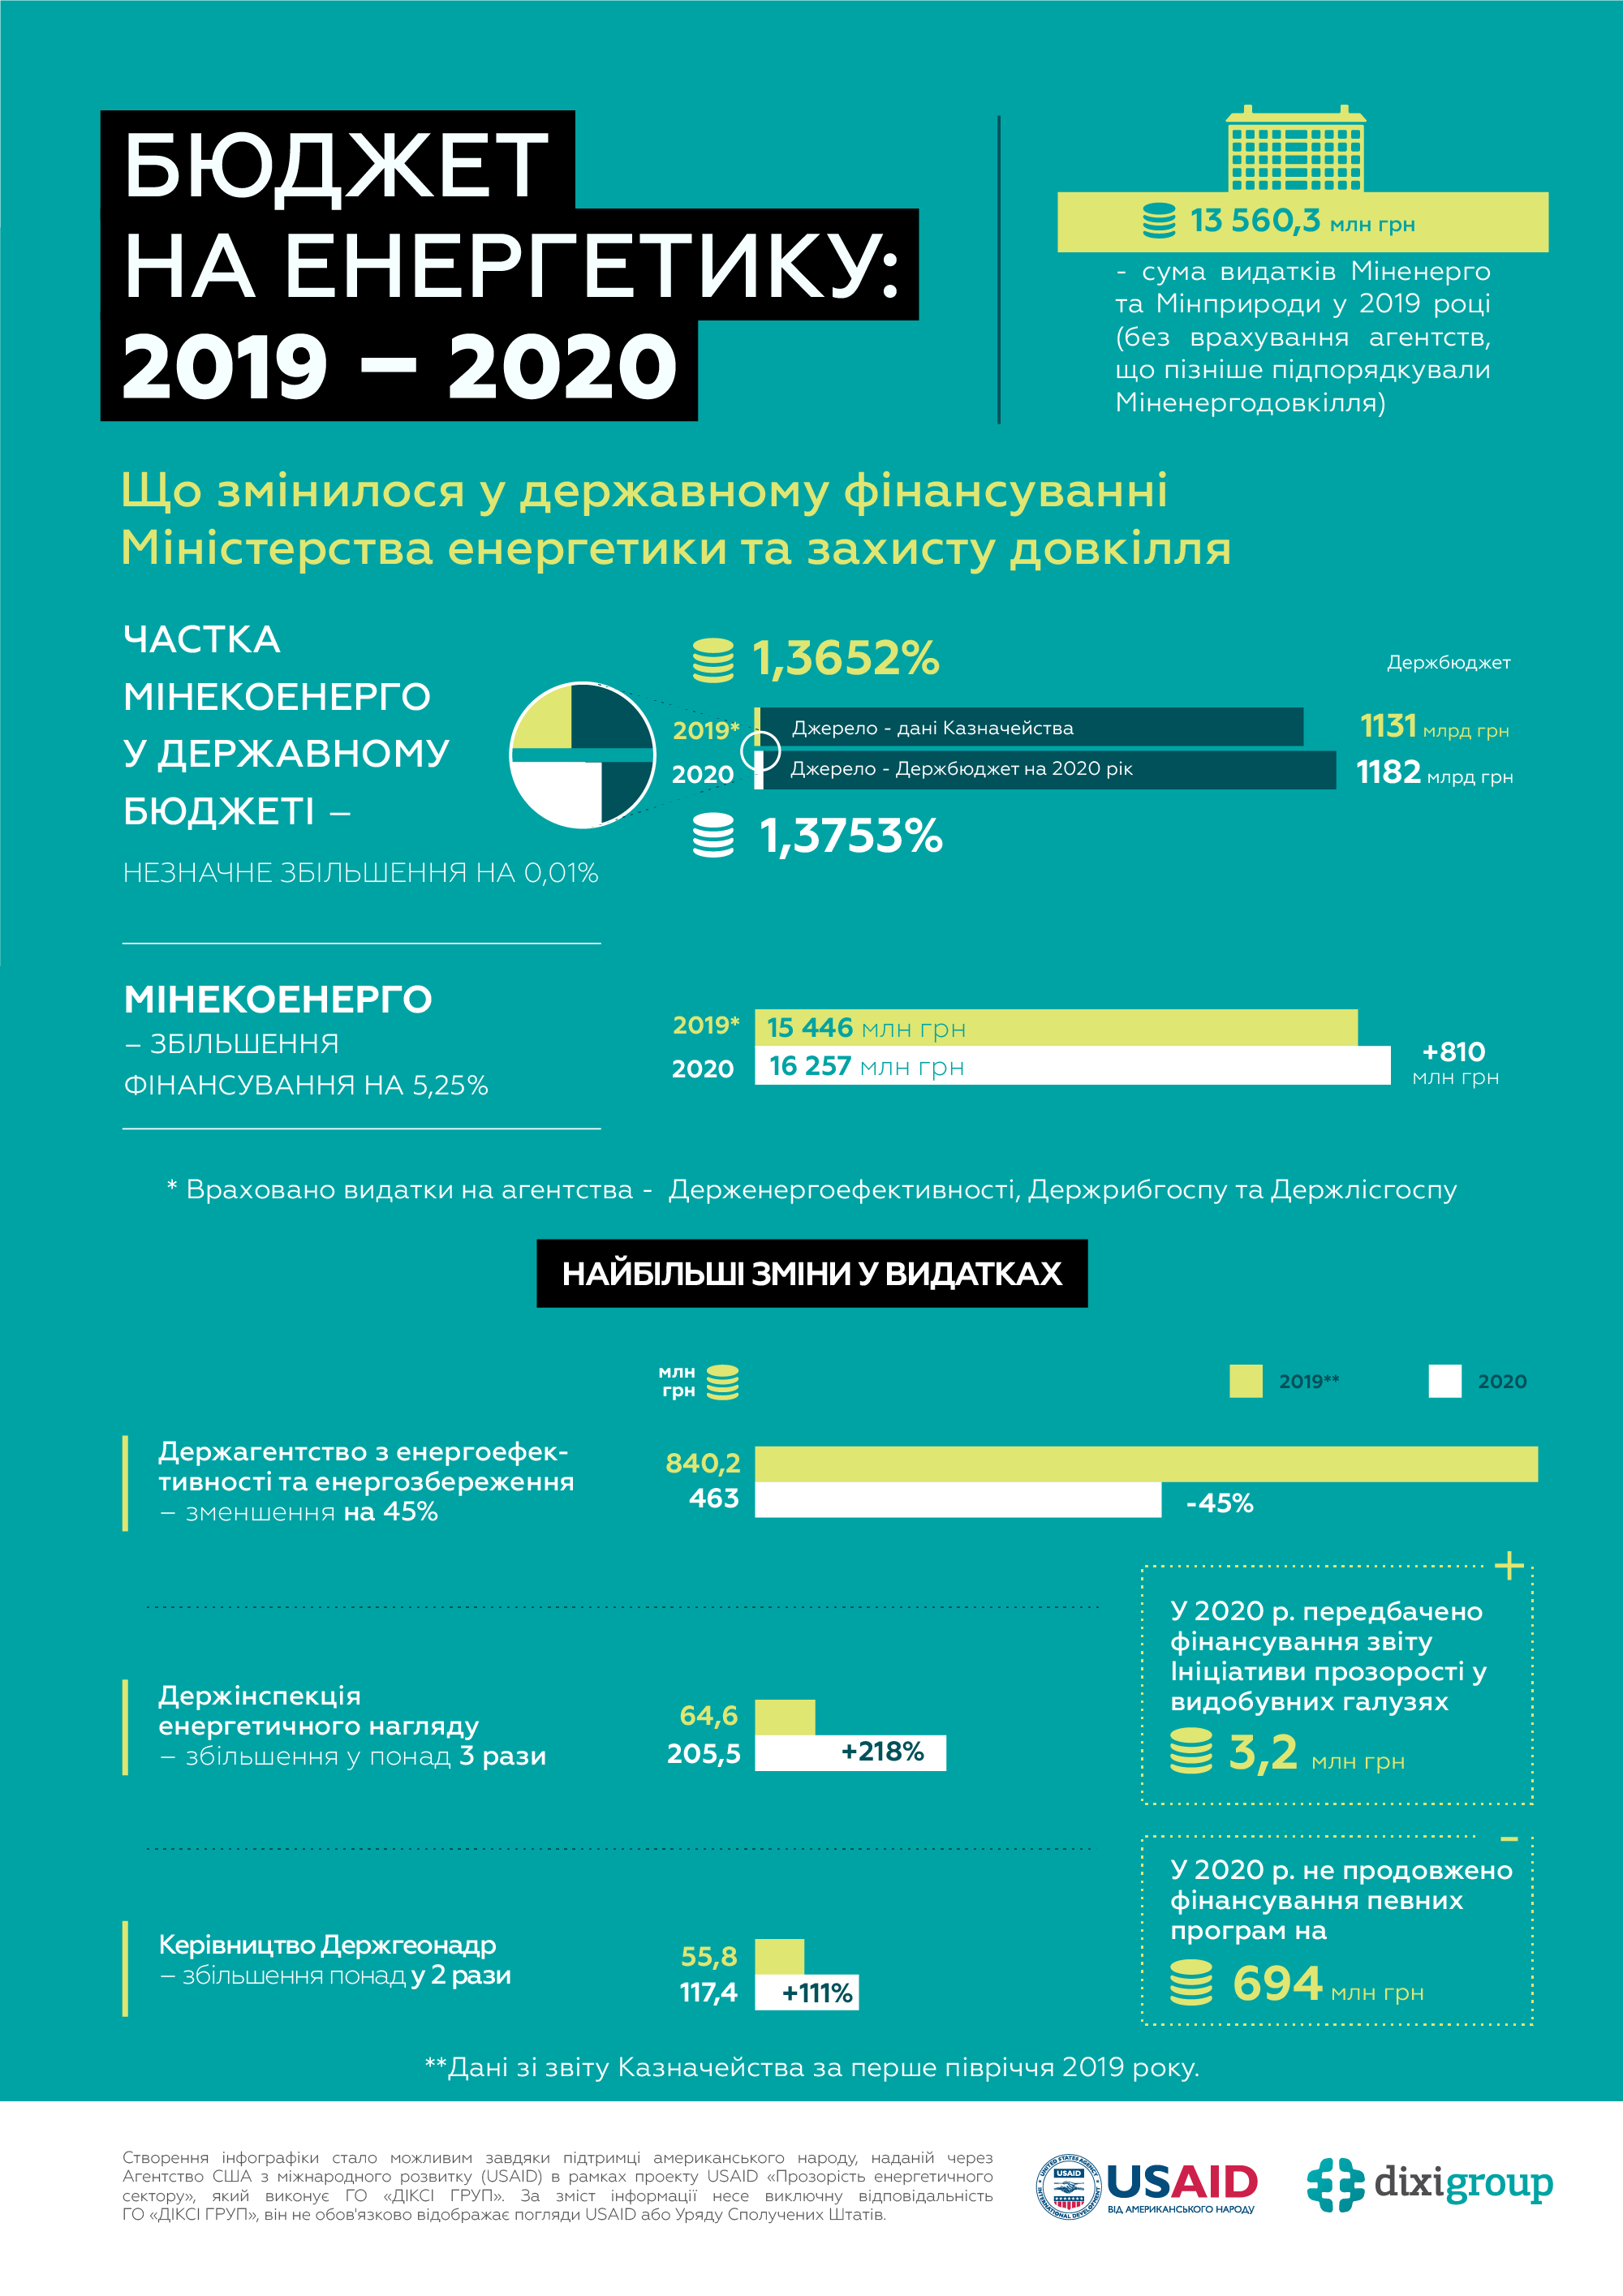 PUBLIC SPENDING IN ENERGY: 2019-2020